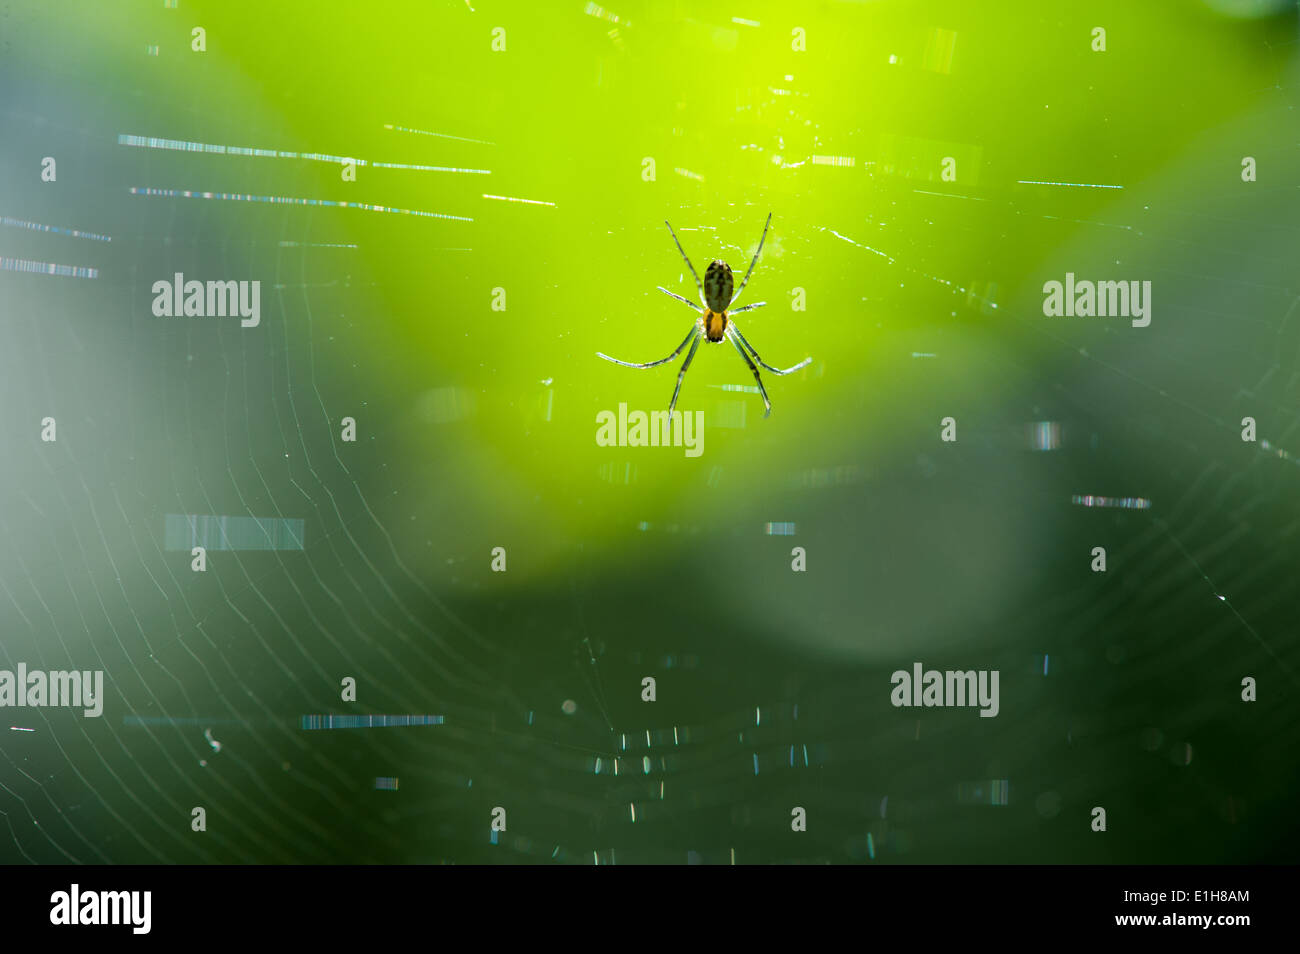 Close up of spider in web - Stock Image